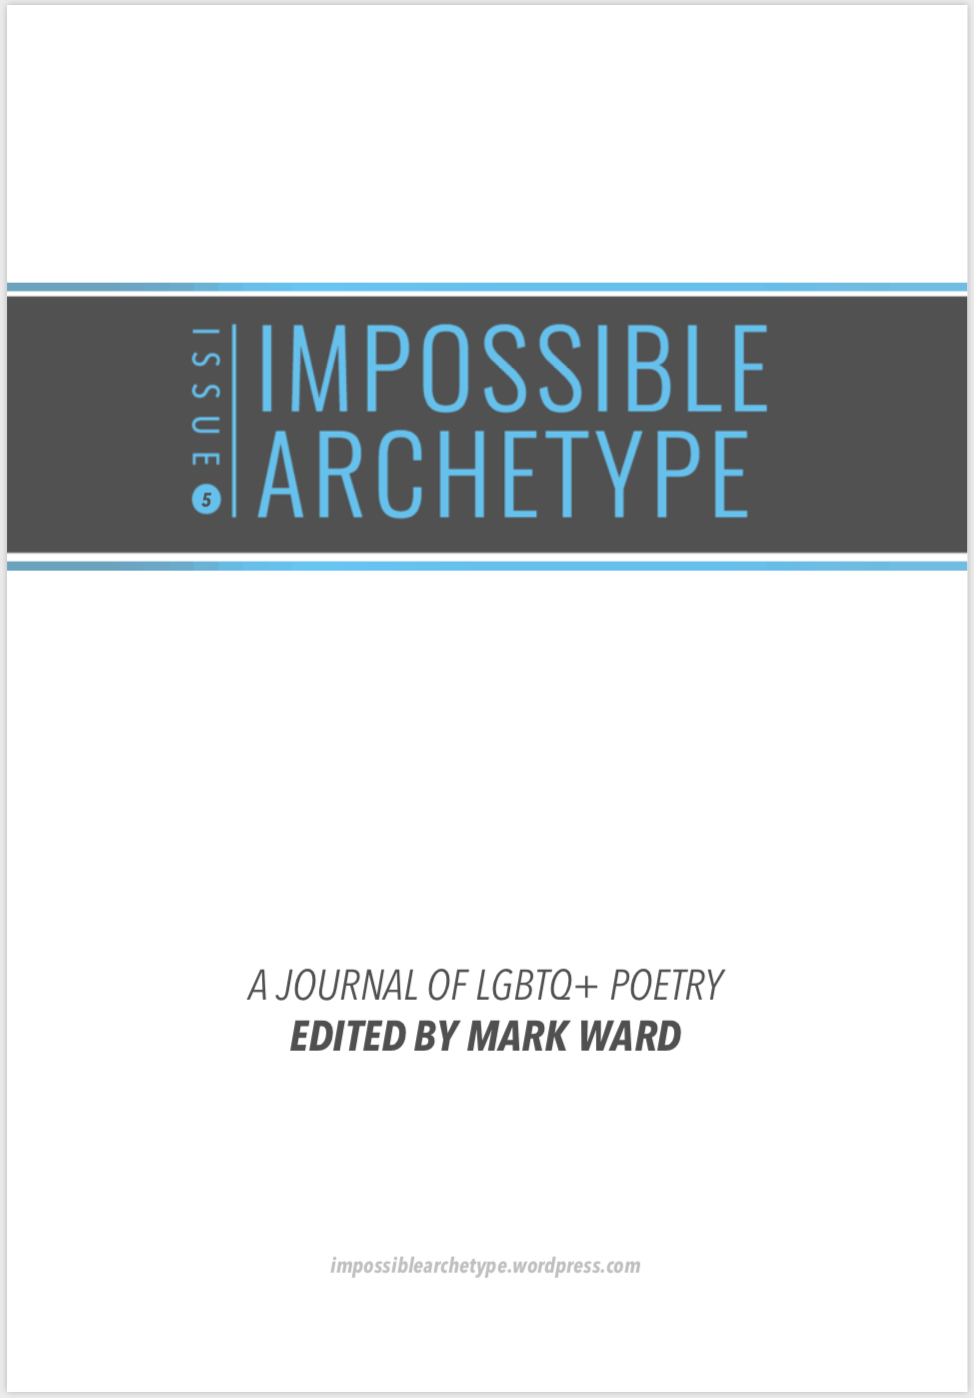 Cover of Issue 5 of Impossible Archetype, a Journal of LGBTQ+ Poetry, edited by Mark Ward